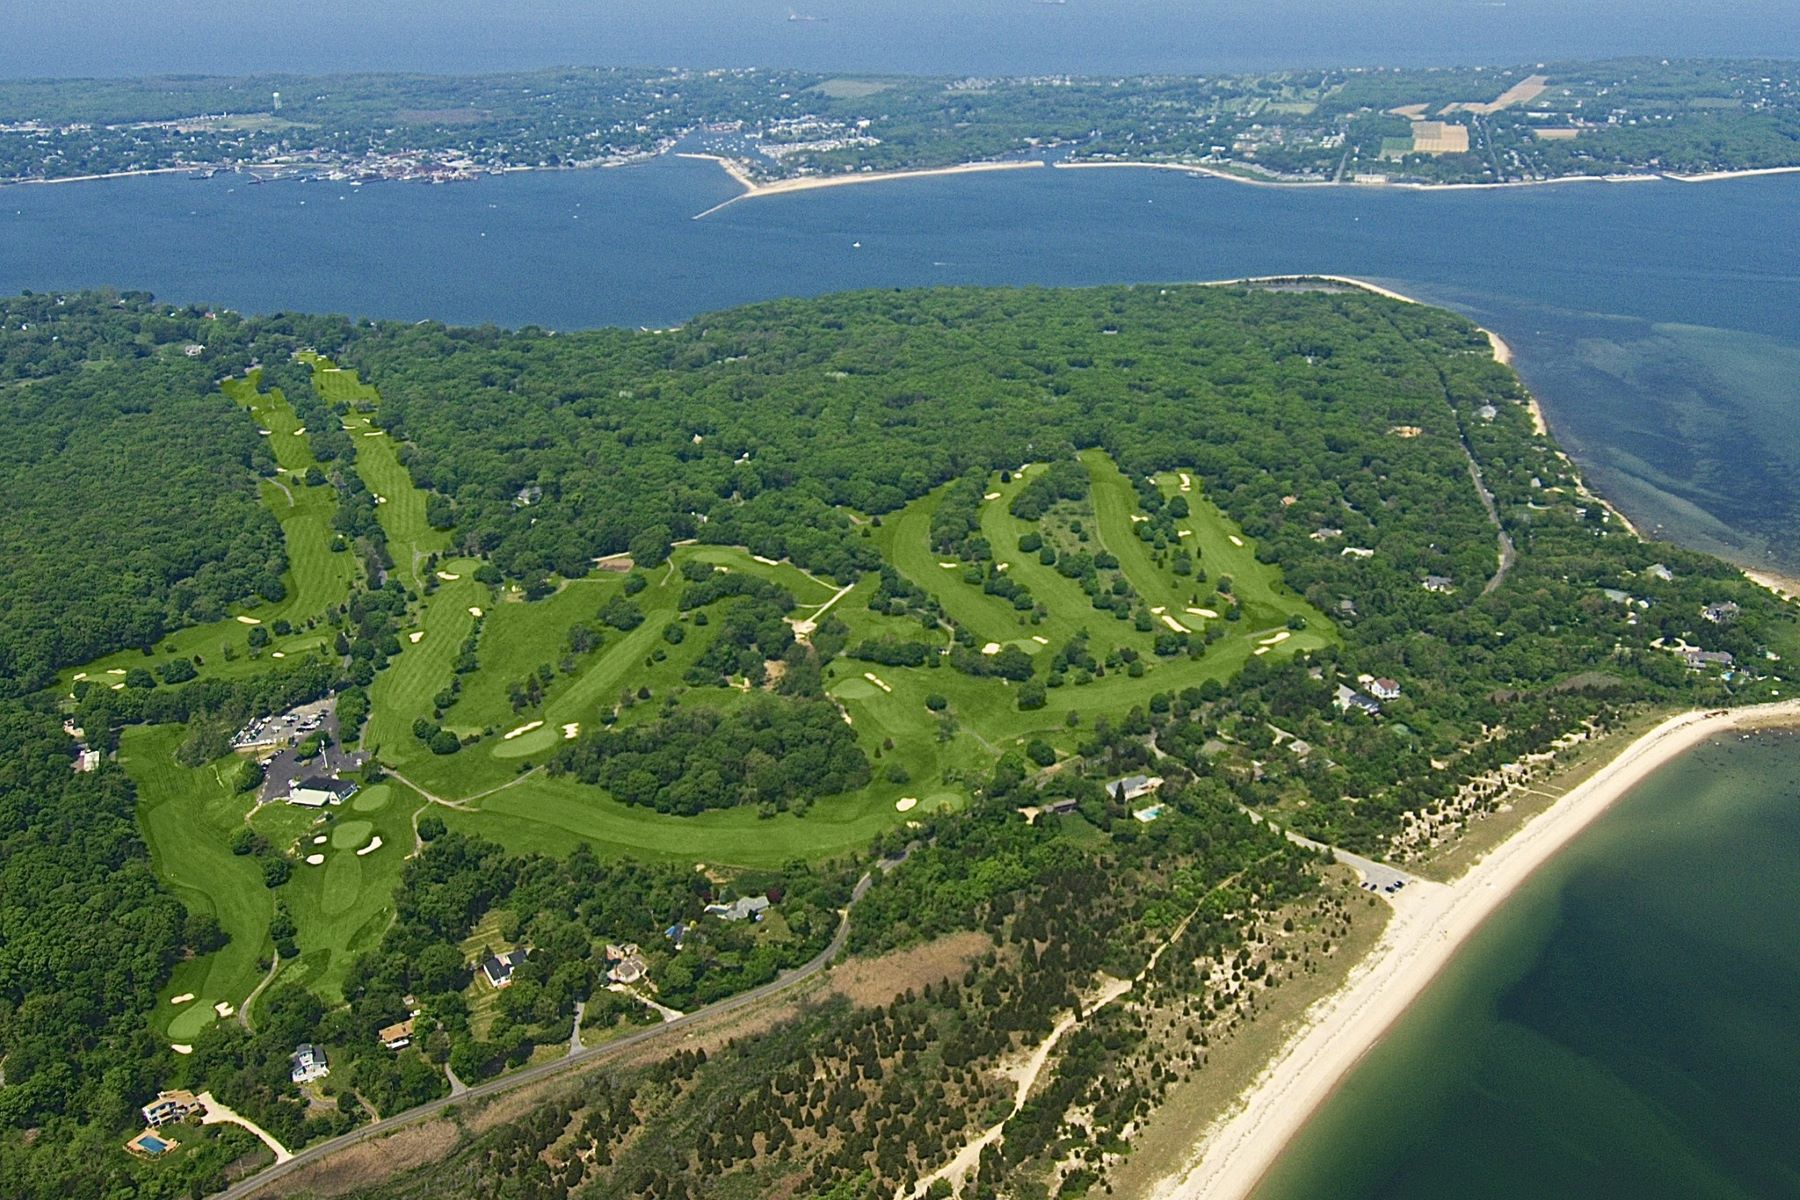 أراضي للـ Sale في 7 Dering Woods Road, Shelter Island, NY 11964 7 Dering Woods Rd, Shelter Island, New York, 11964 United States